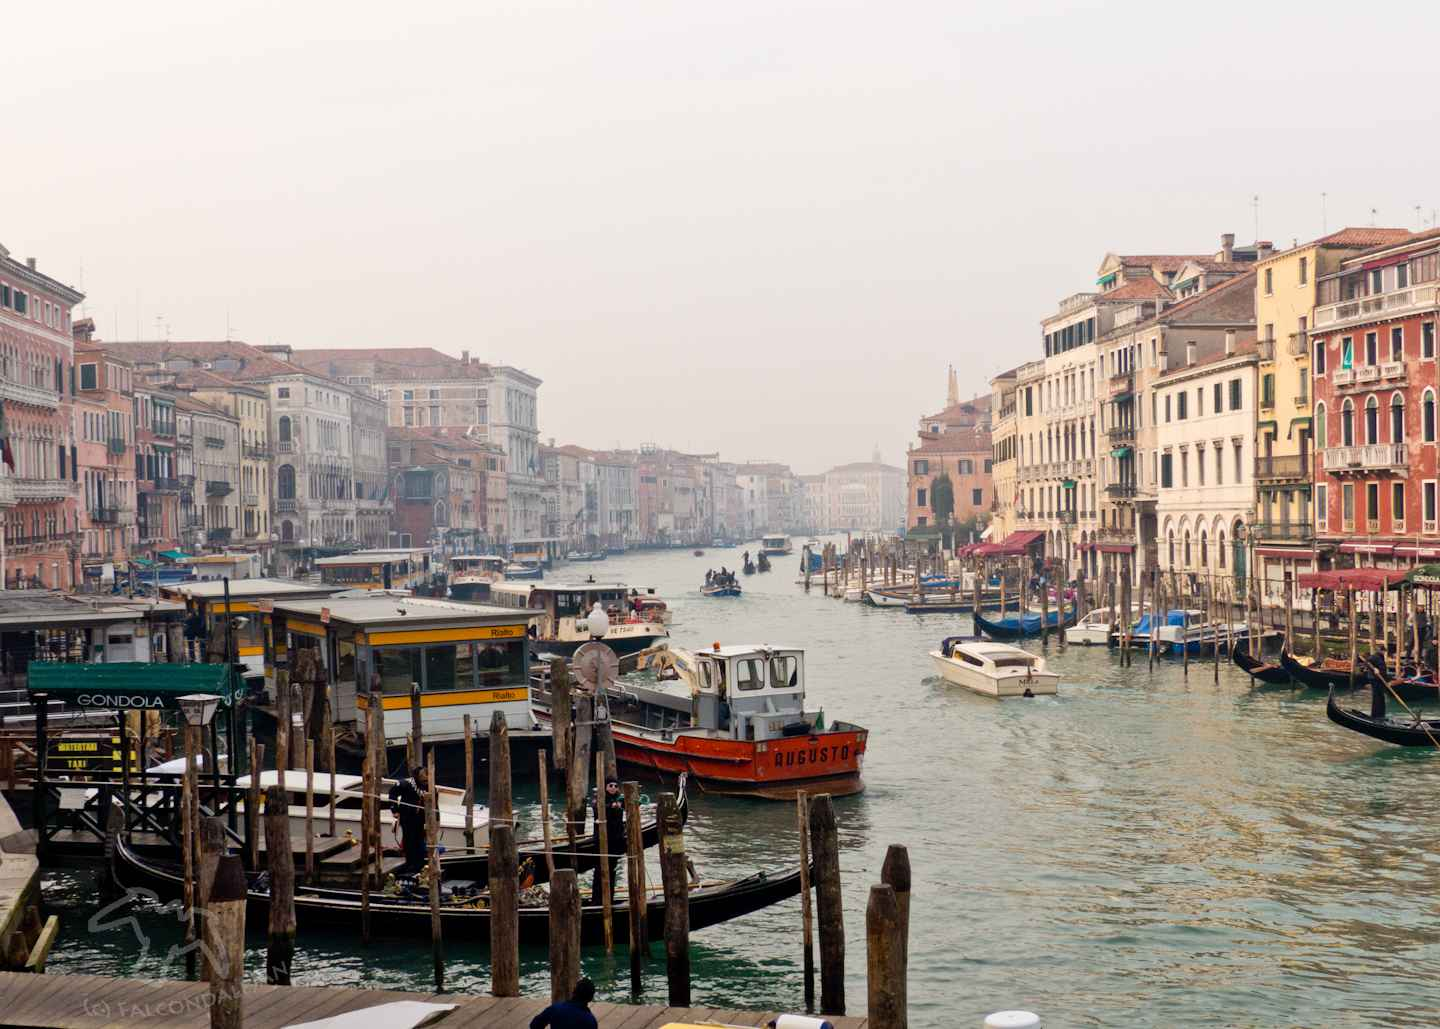 Can parents find romance in Venice with kids in tow or is it best to go without the children? Tips for Mums and Dads visiting the world's most romantic city. Plan a romantic trip to Venice with kids in tow on Falcondale Life blog. Image description: Venice grand canal in winter